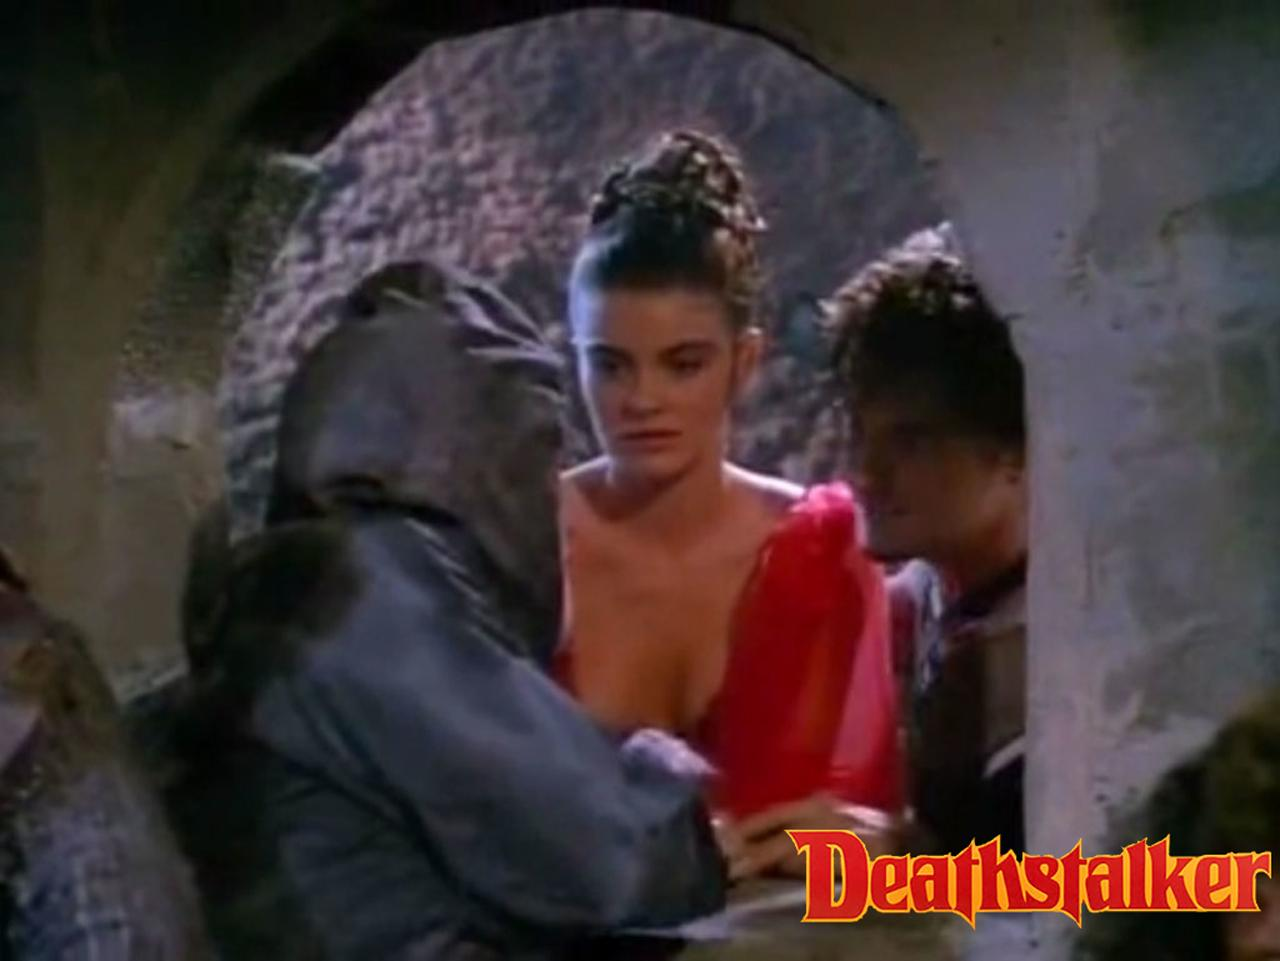 Carla Herd as Princess Carissa in Deathstalker III: The Warriors from Hell